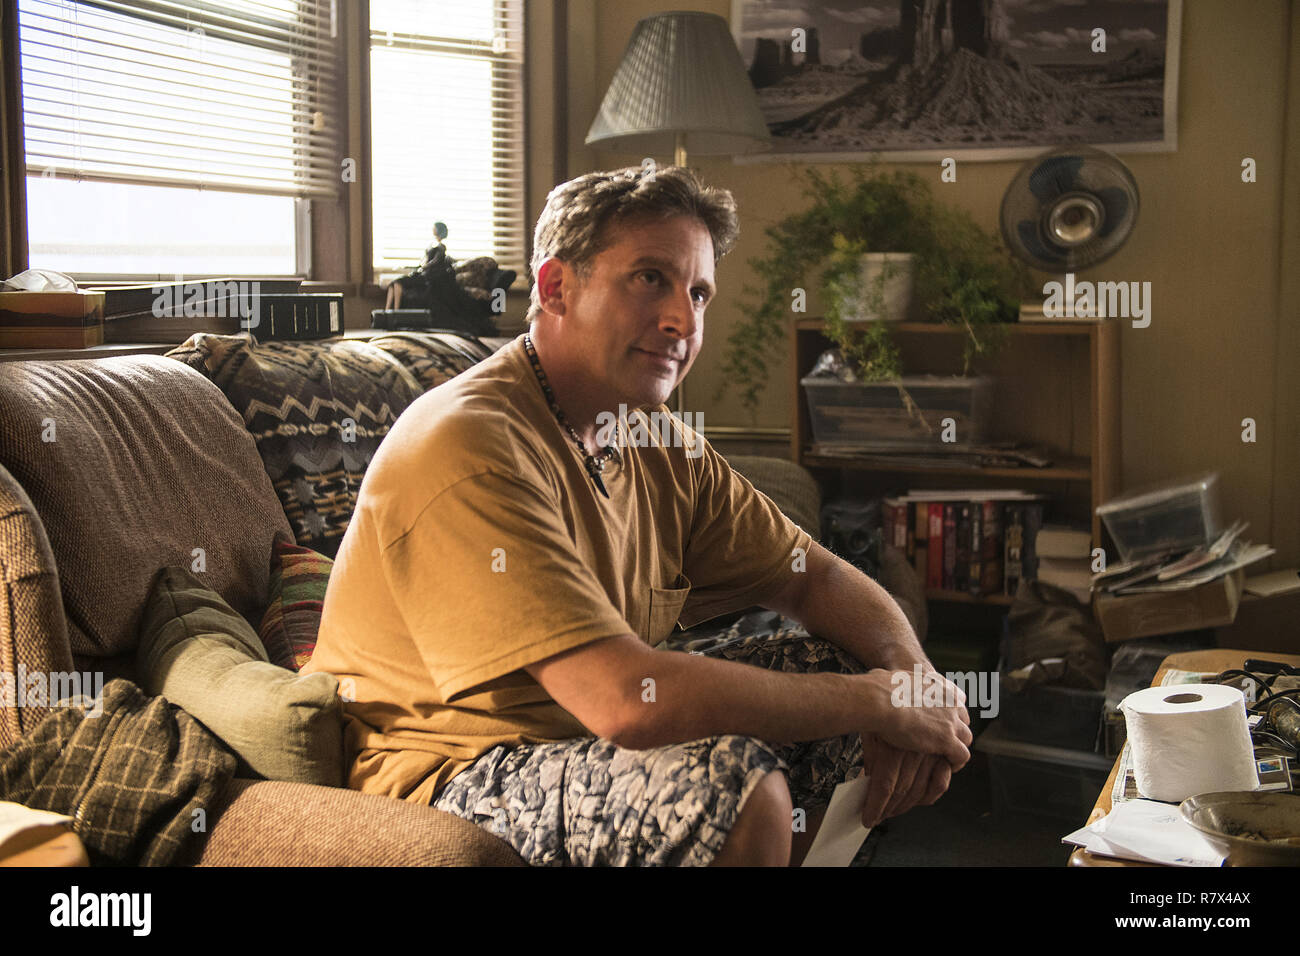 Steve Carell as Mark Hogancamp in 'Welcome to Marwen,' directed by Robert Zemeckis.  Photo Credit: Universal Pictures and Storyteller Distribution Co., LLC. / The Hollywood Archive - Stock Image